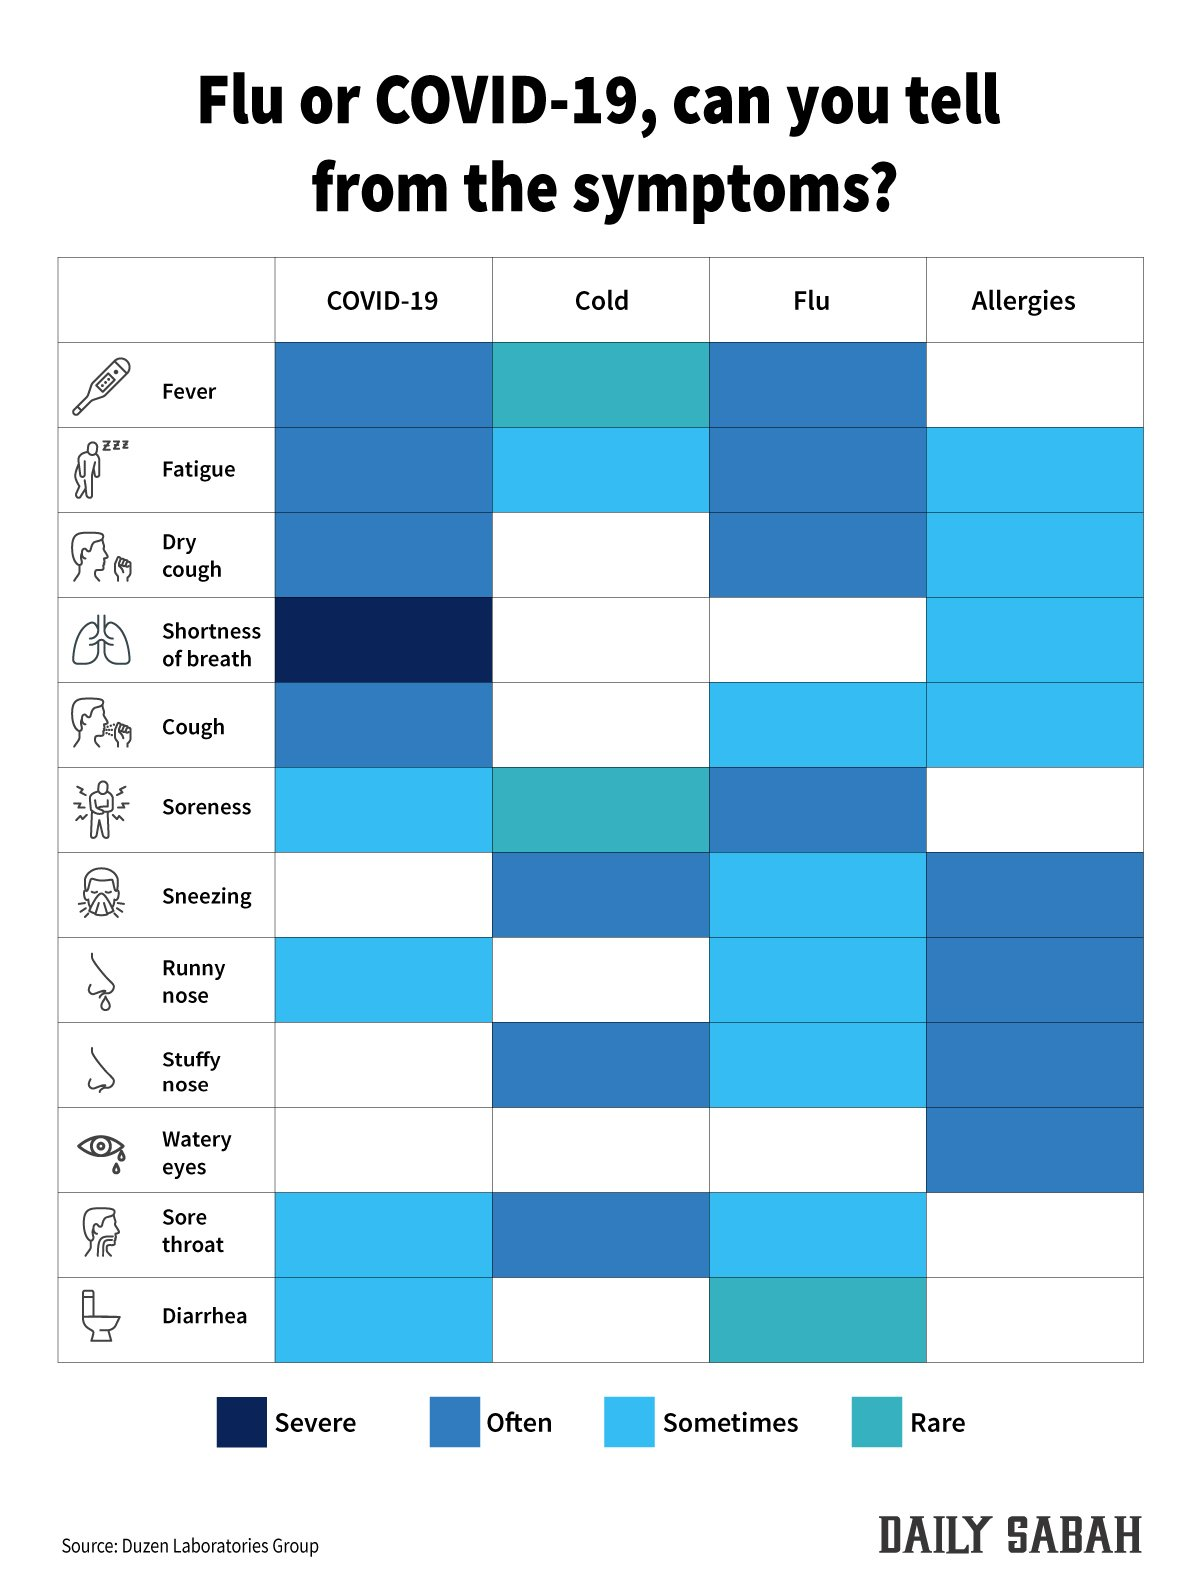 Knowing the different symptoms of coronavirus, flu and allergies